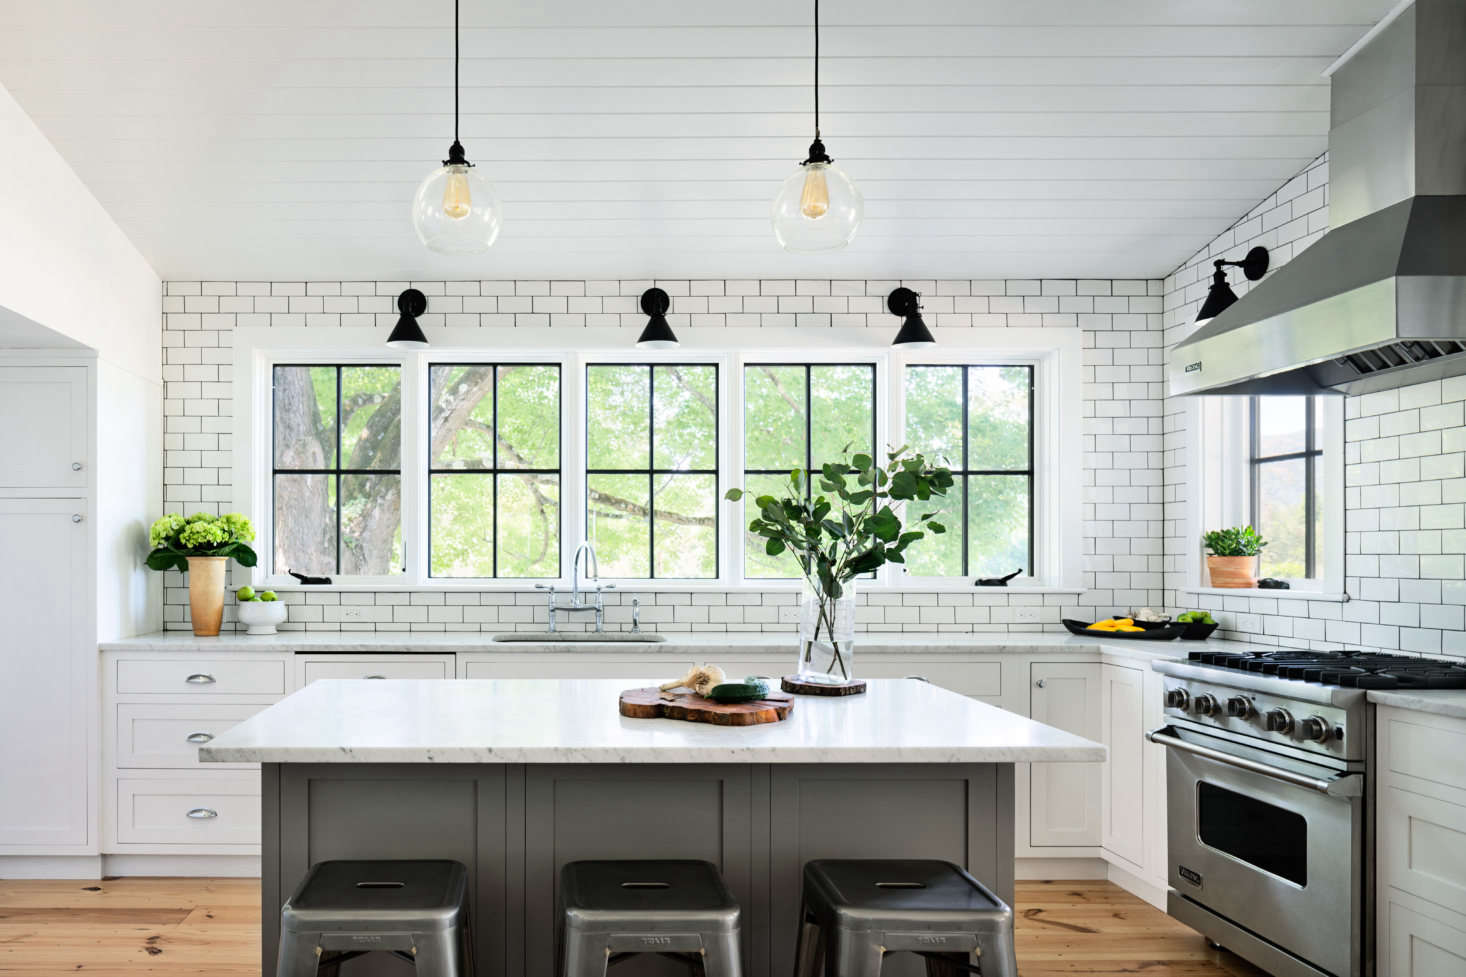 Porter set off the kitchen with subway-tiled walls and a Carrara marble-topped breakfast counter. In lieu of upper cabinets, five windows frame views of an old maple tree.